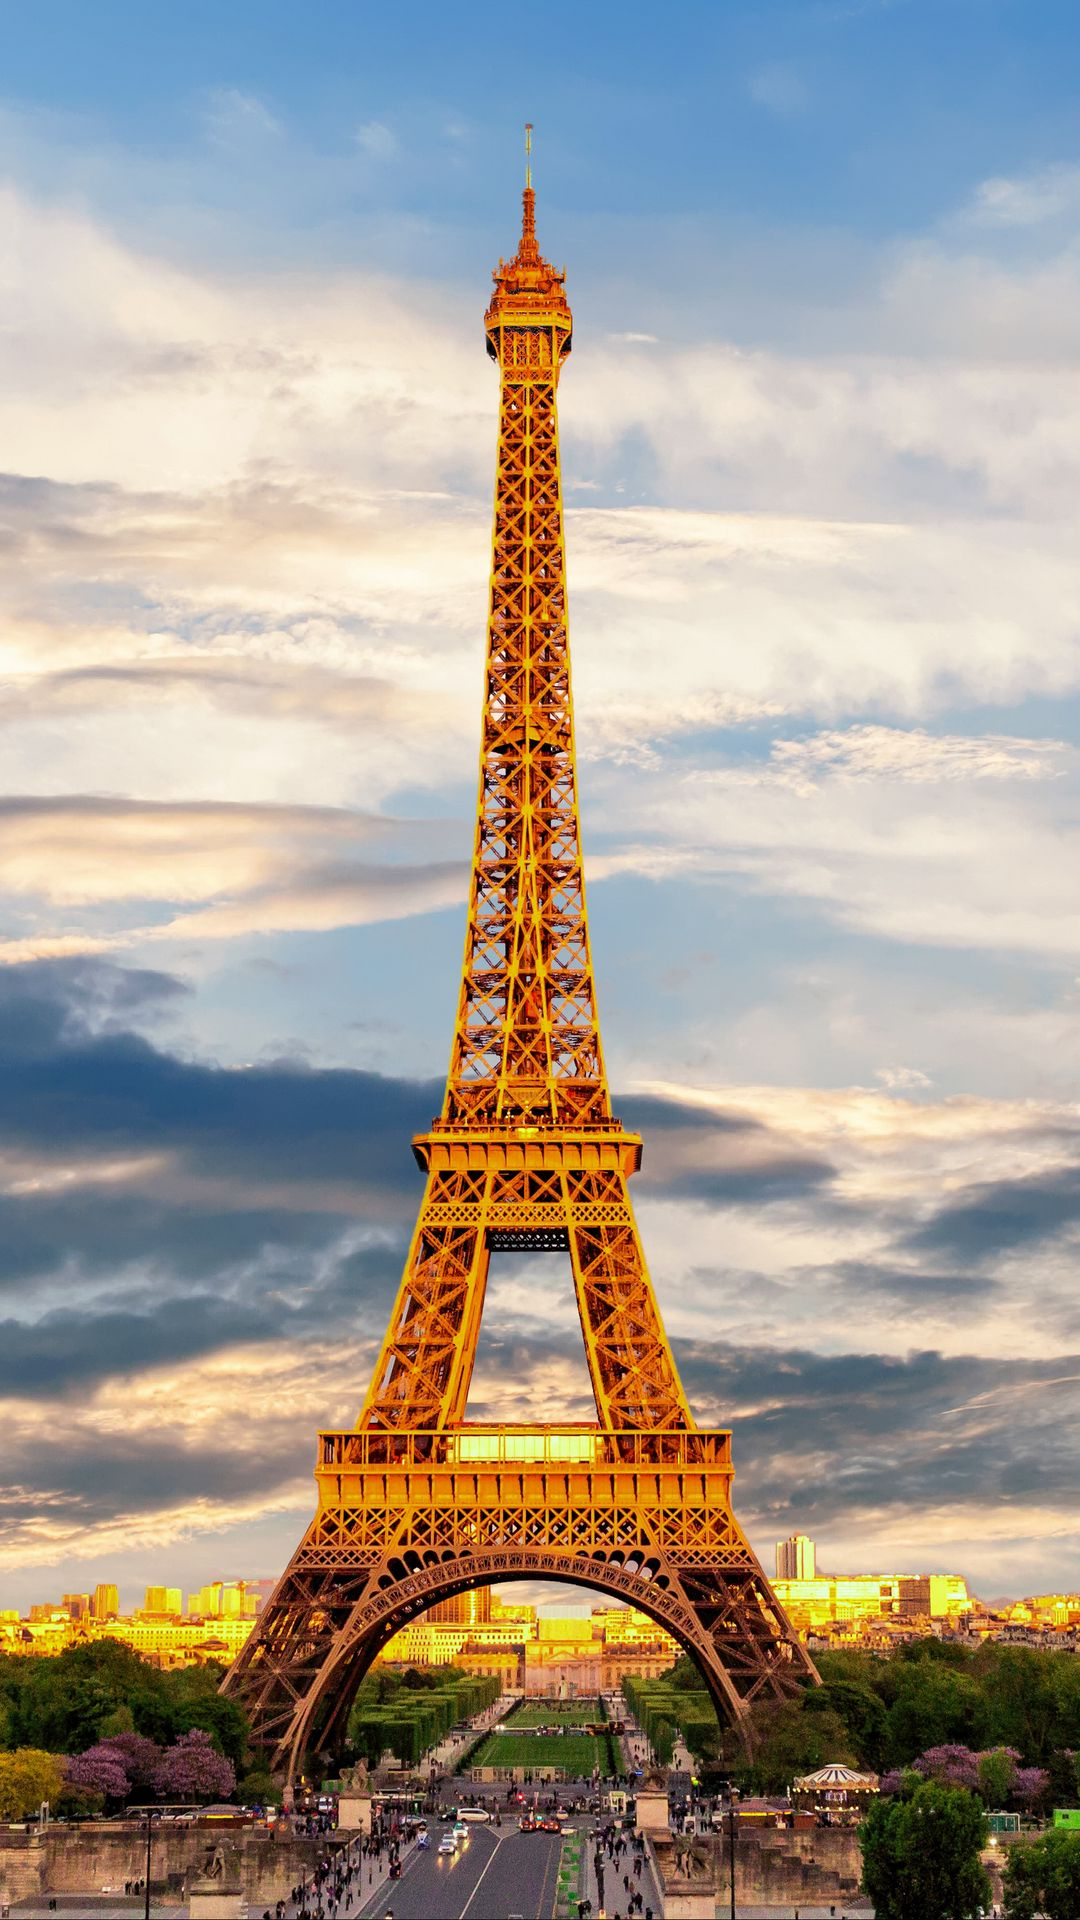 download wallpaper 1080x1920 eiffel tower, paris, france, showplace